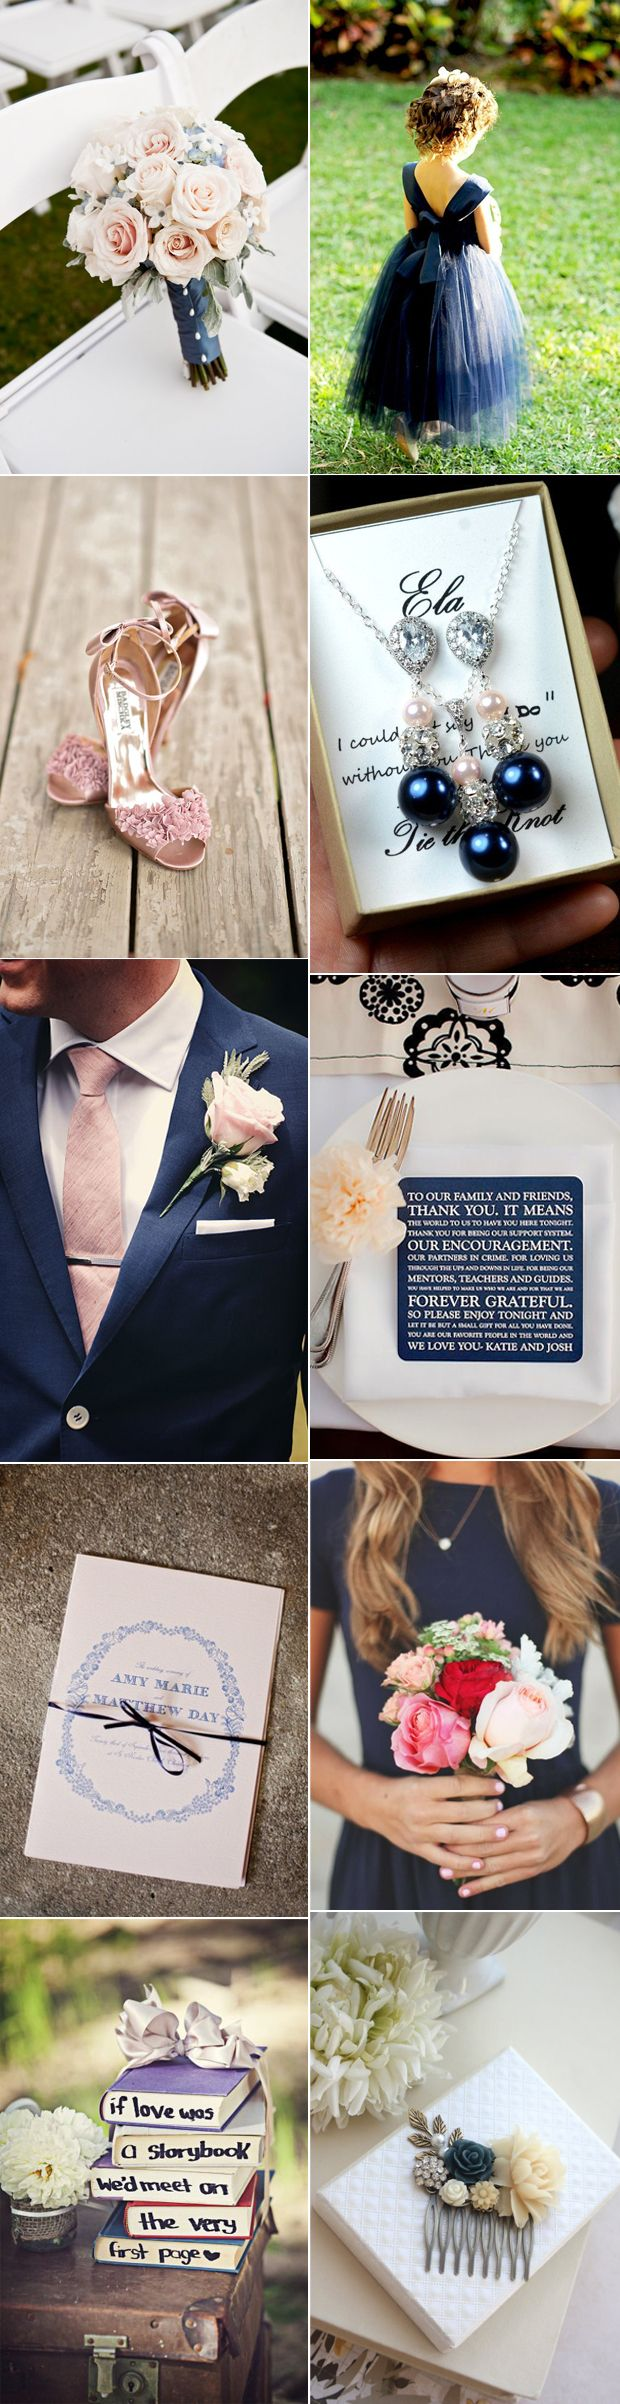 Timeless navy meets pretty blush pink in today's chic and romantic wedding palette!